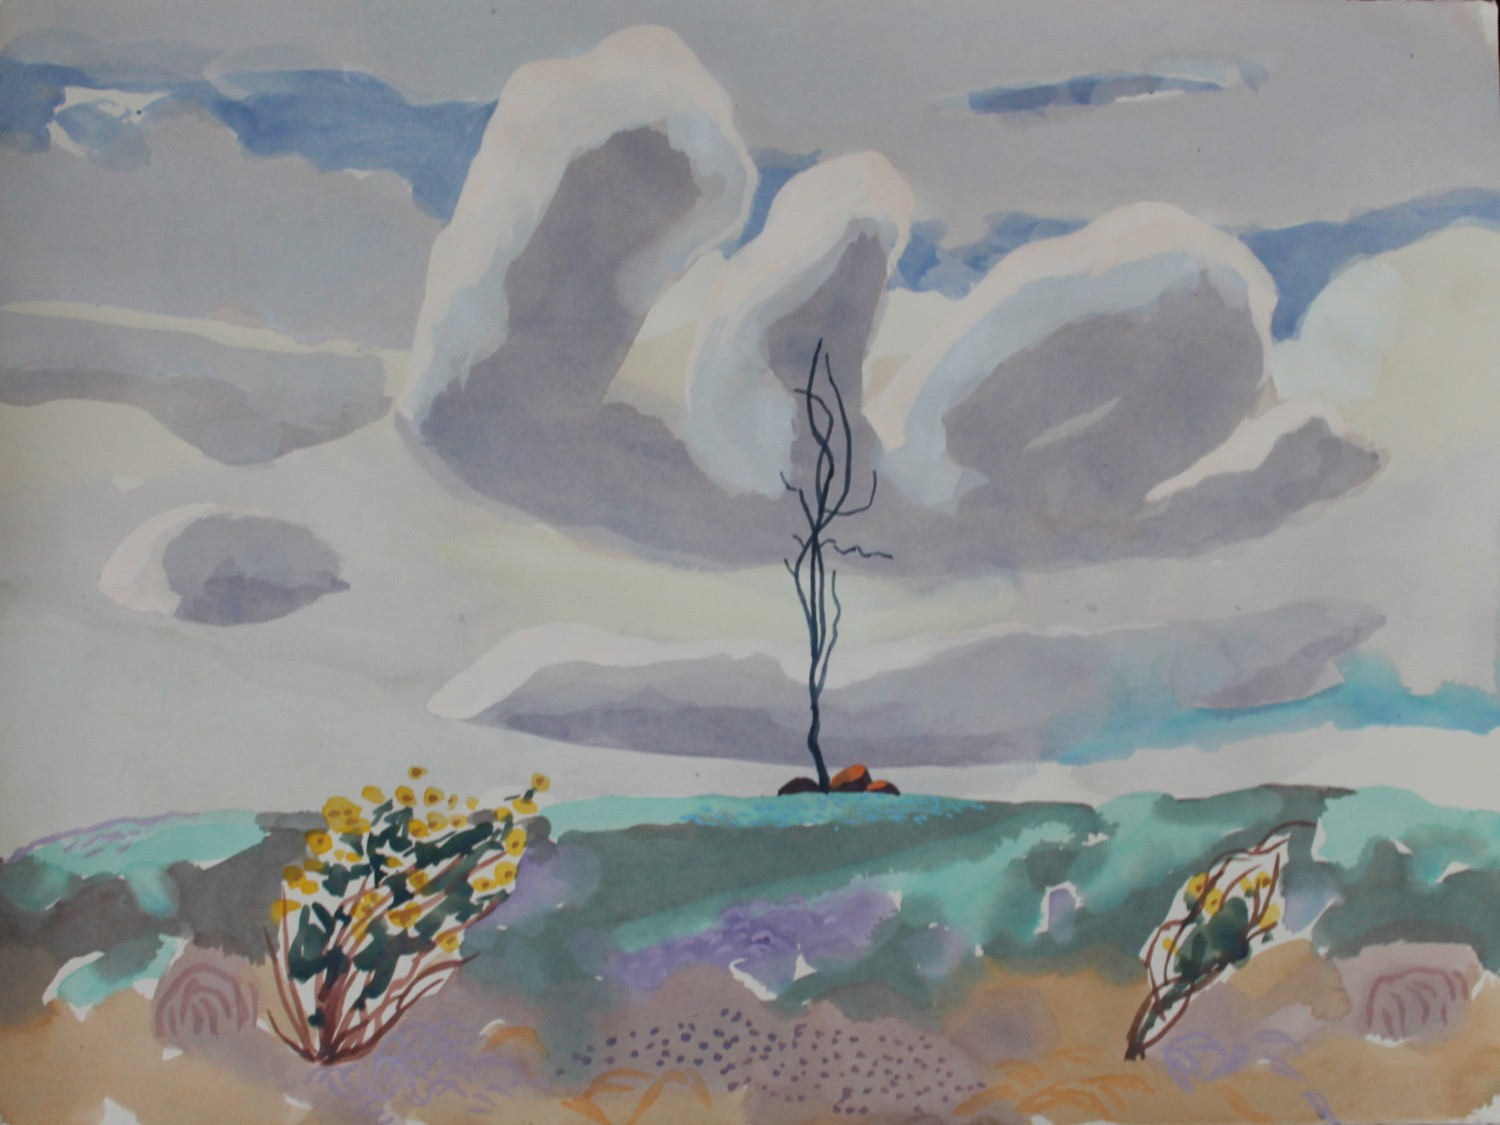 Wildflowers, tree and cloud (Nuggetty Hills) 2020 by Mark Dober